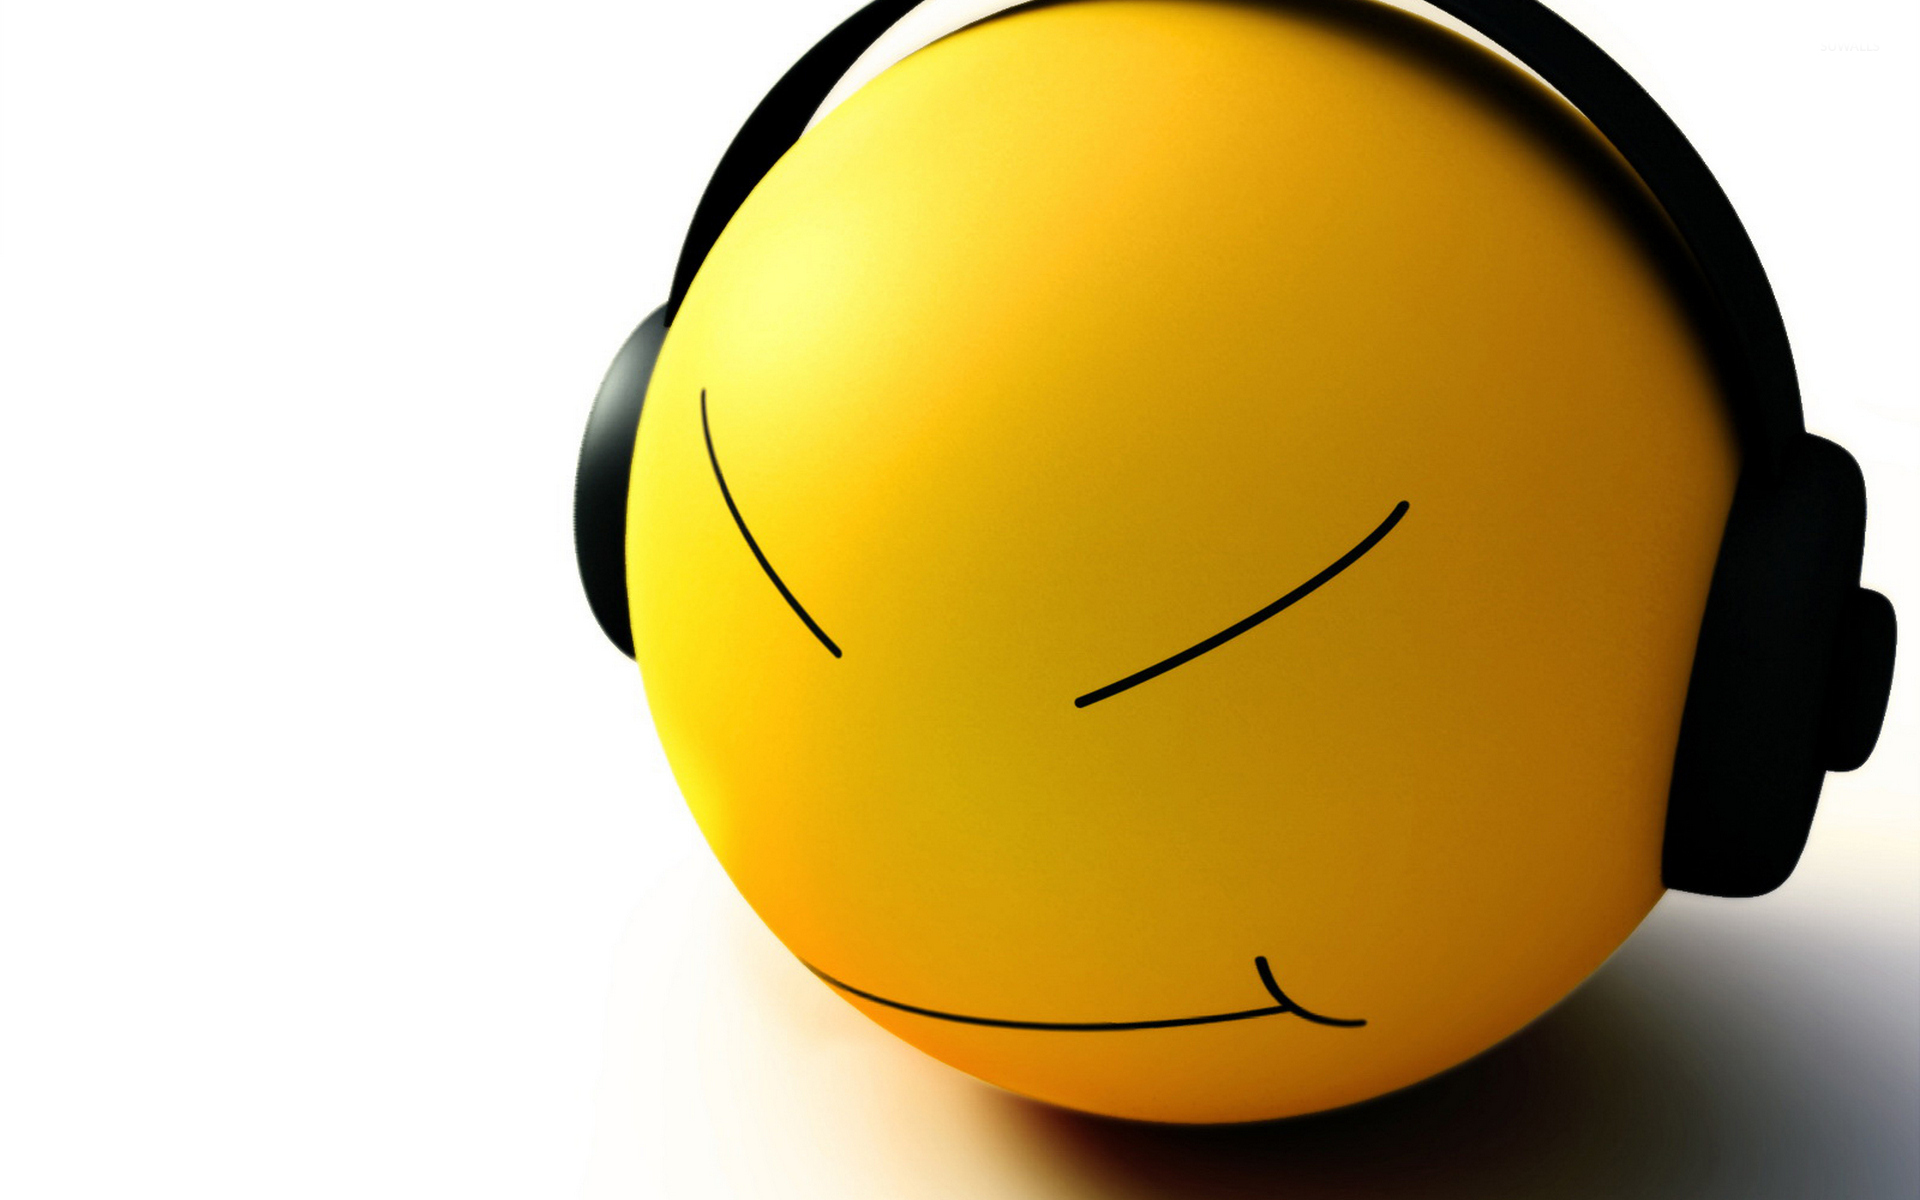 Simple Wallpaper Music Emoji - smiley-face-with-headphones-38670-1920x1200  Pictures_981375.jpg